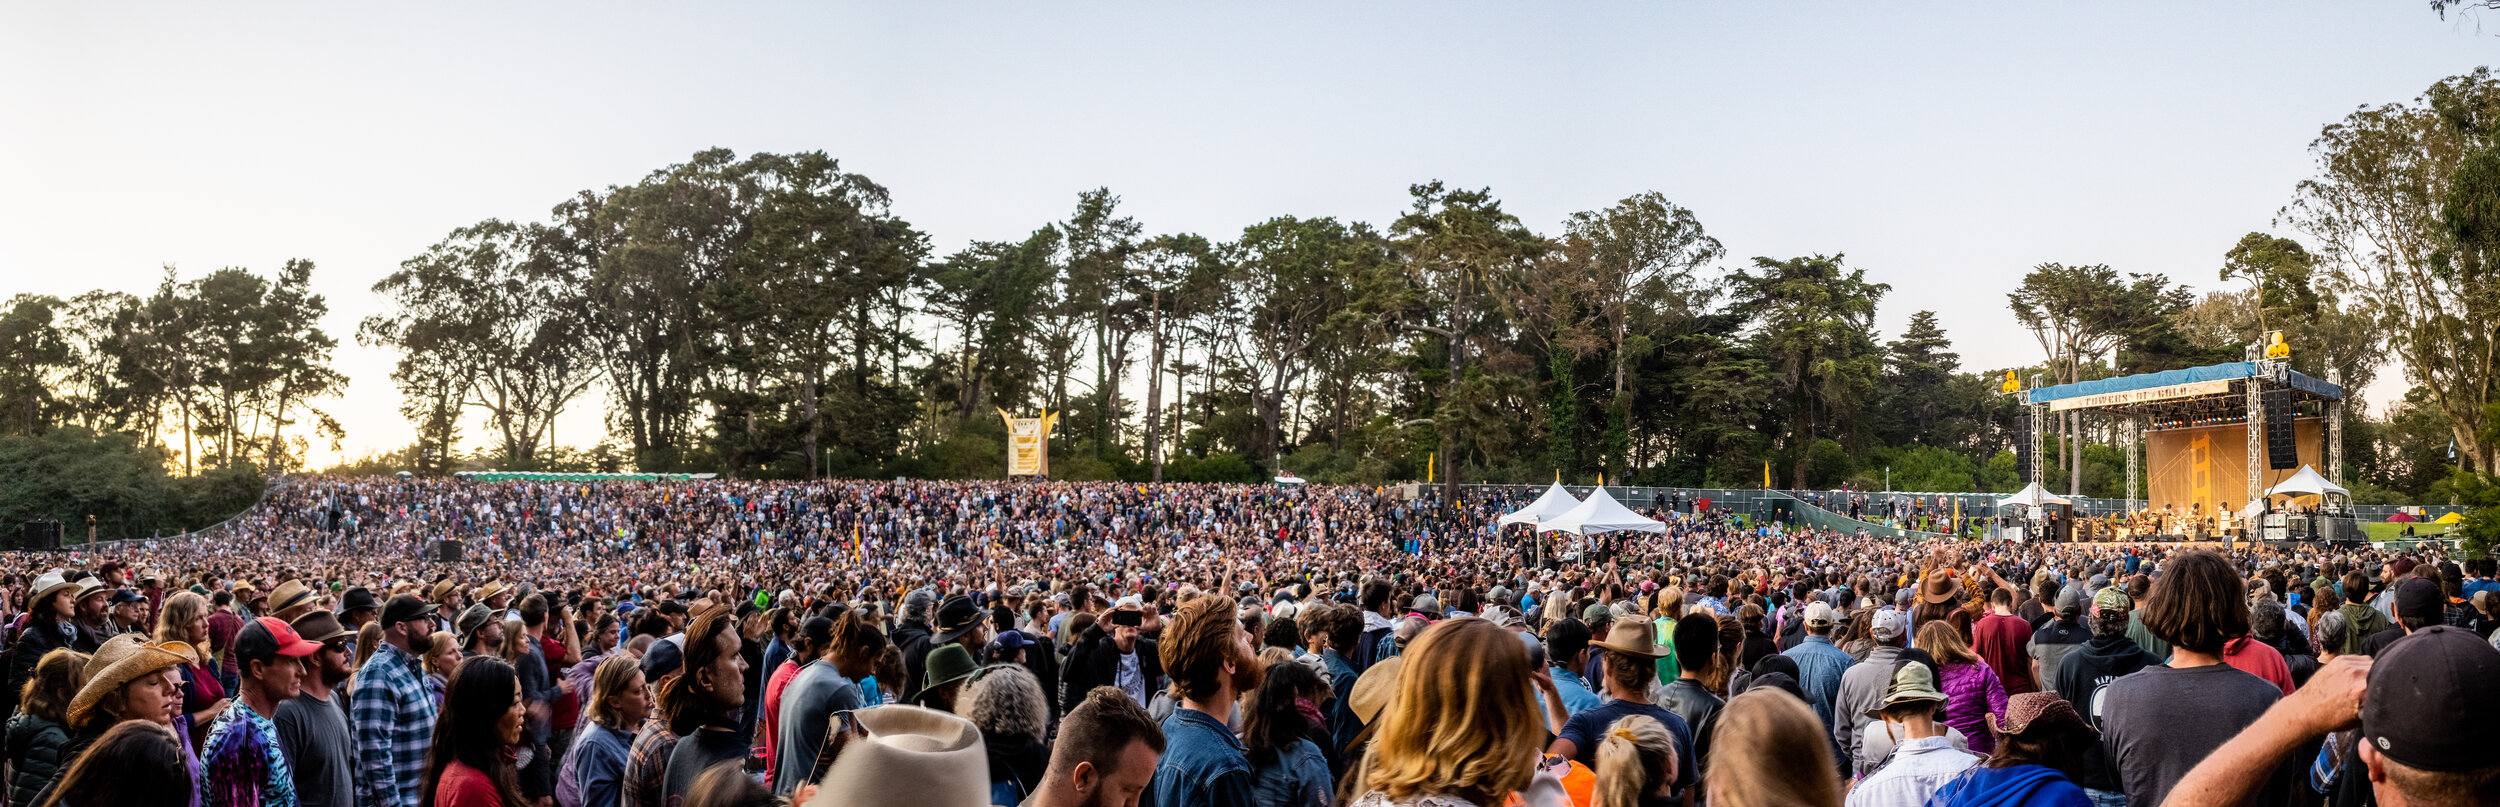 Hardly Strictly Bluegrass 2019, Towers of Gold Stage, Robert Plant